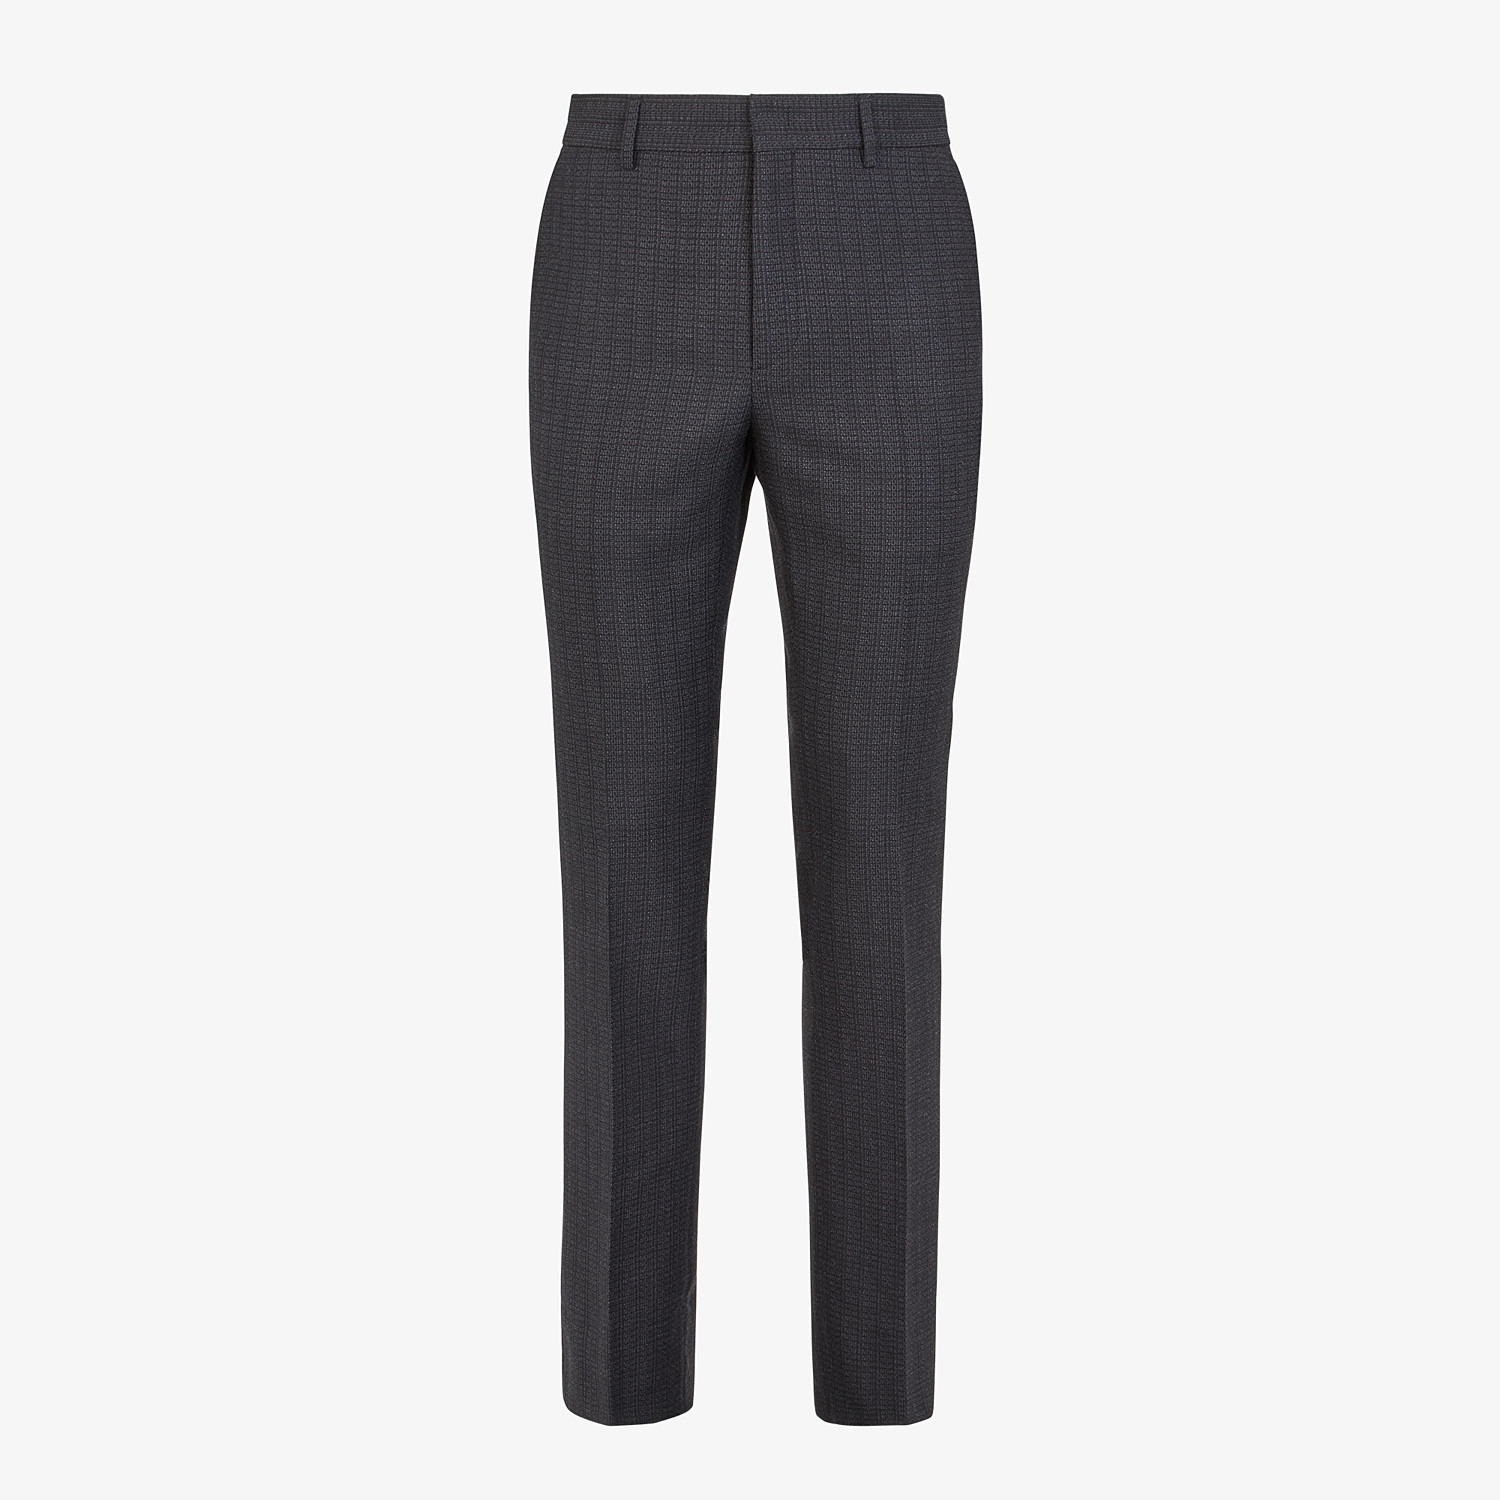 FENDI PANTS - Pants in black cotton, silk and wool - view 1 detail